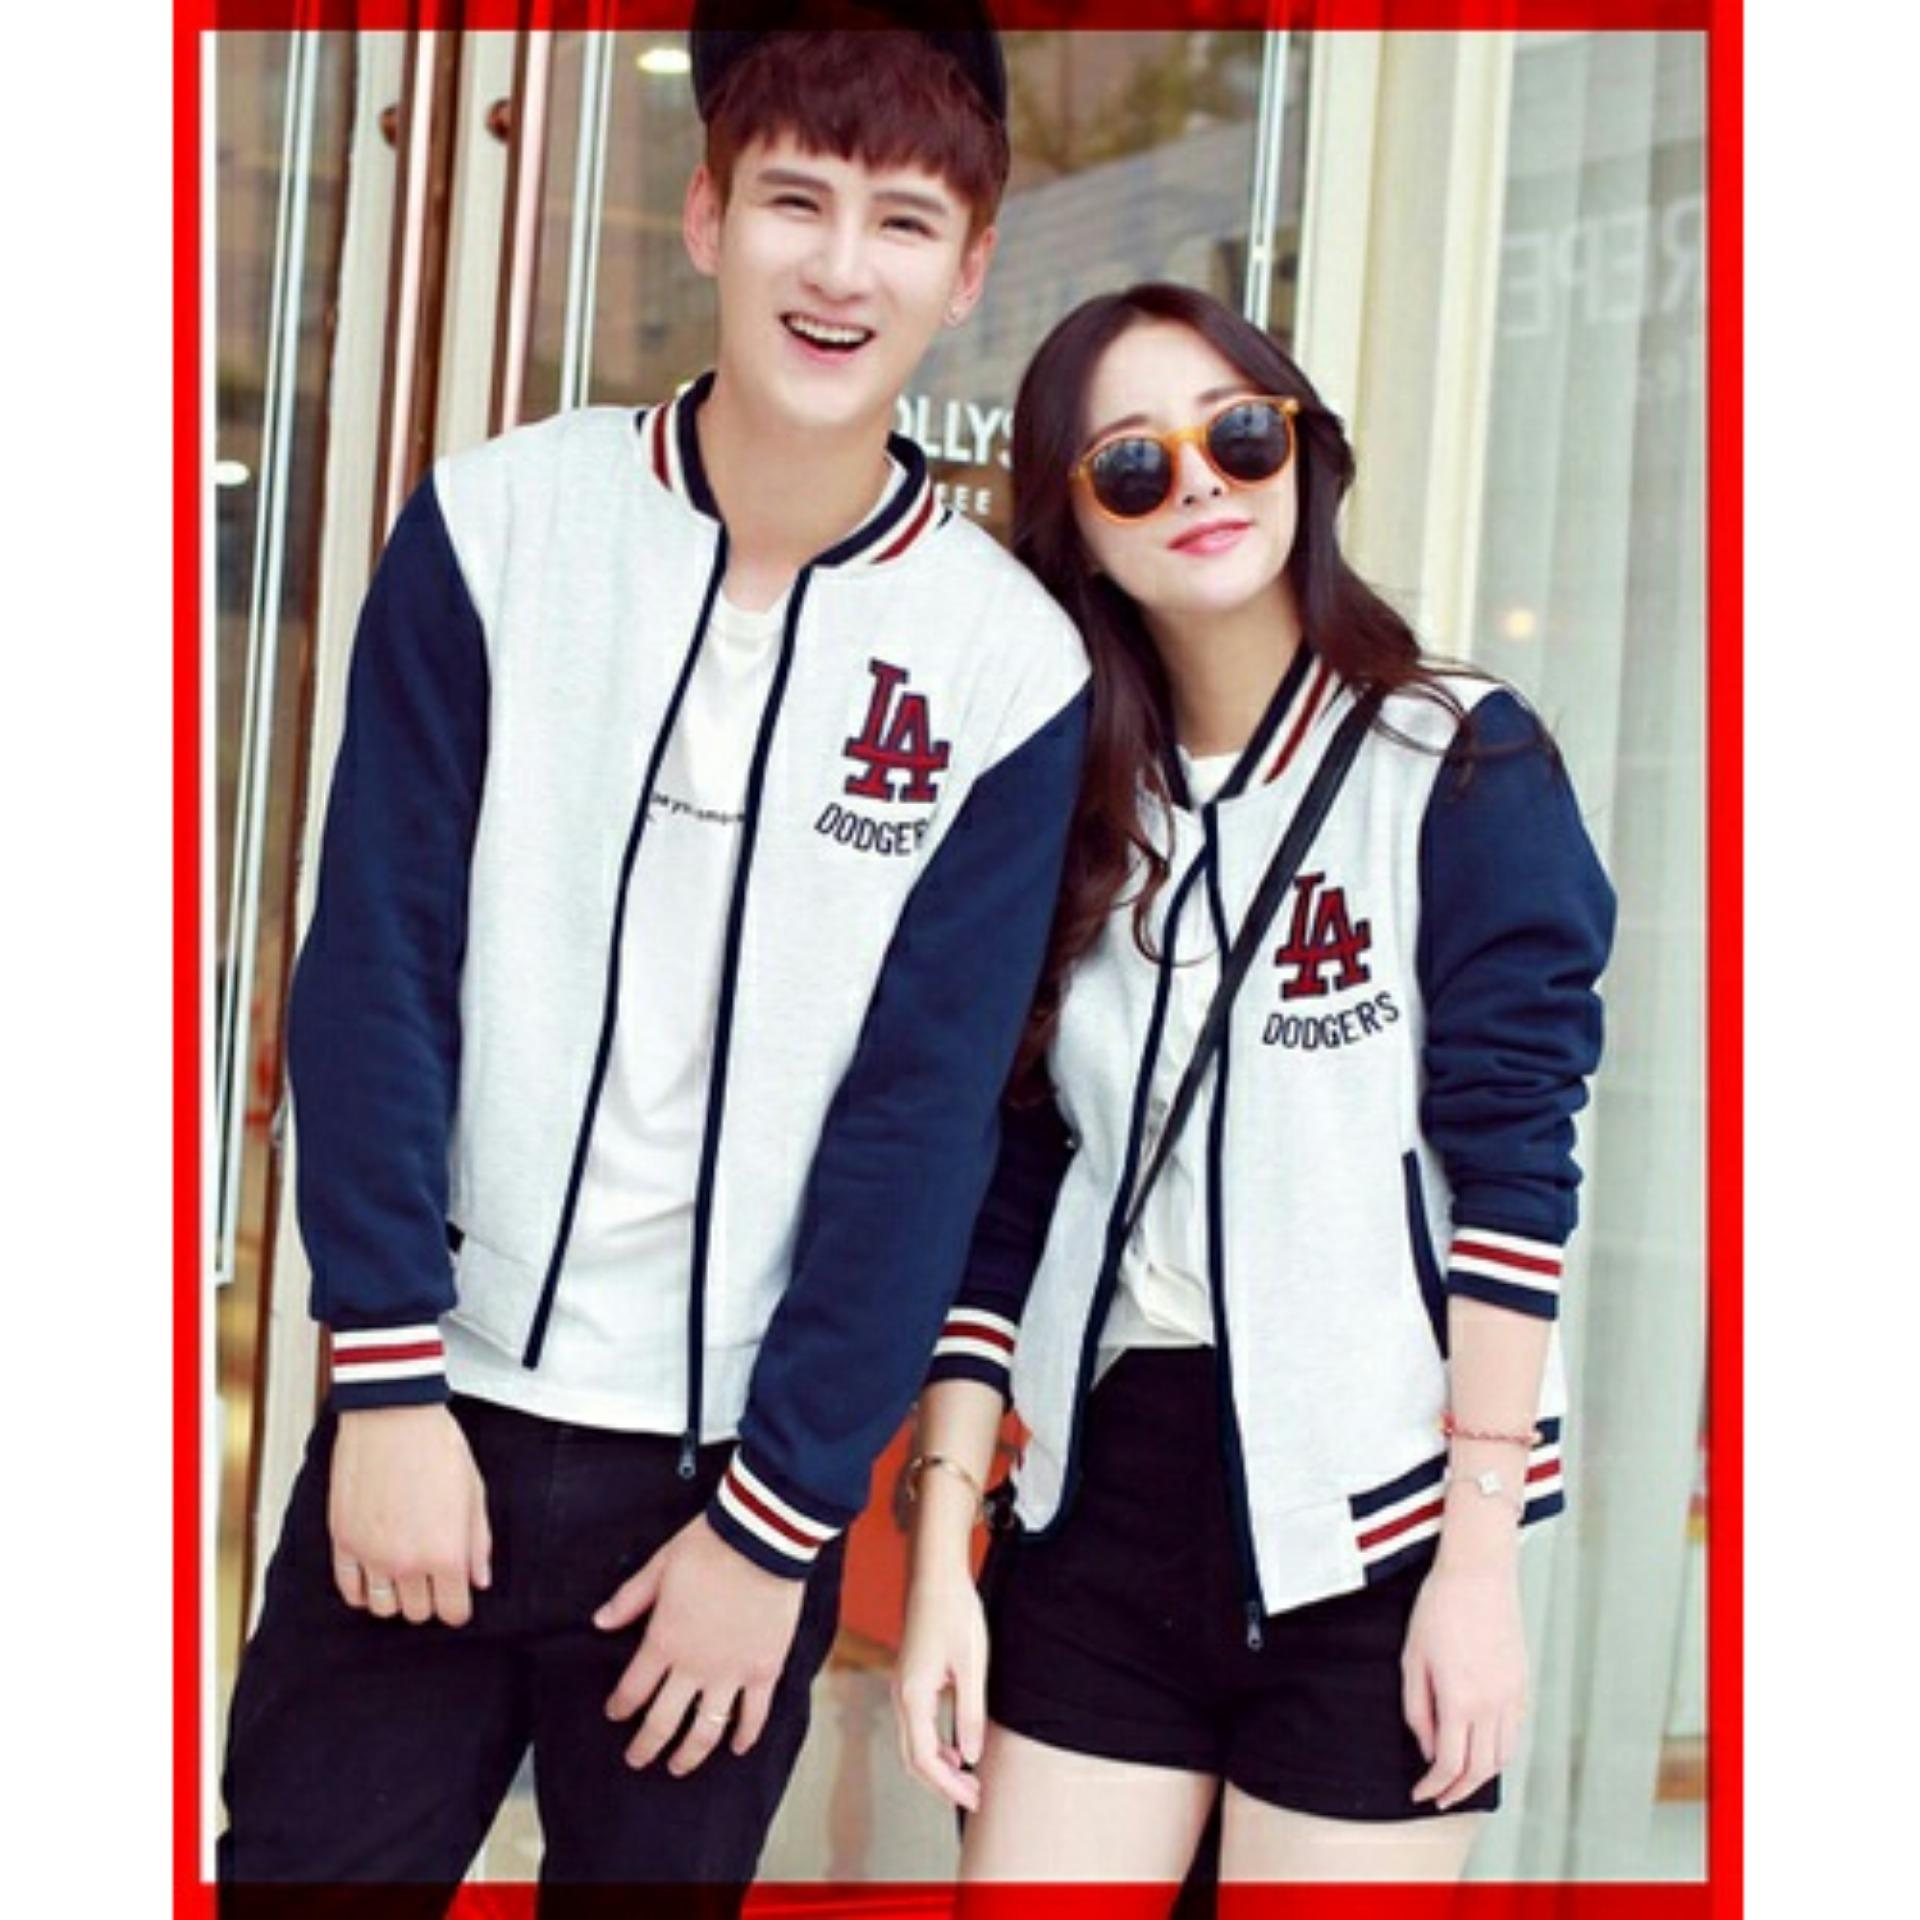 Jaket Couple LA Putih